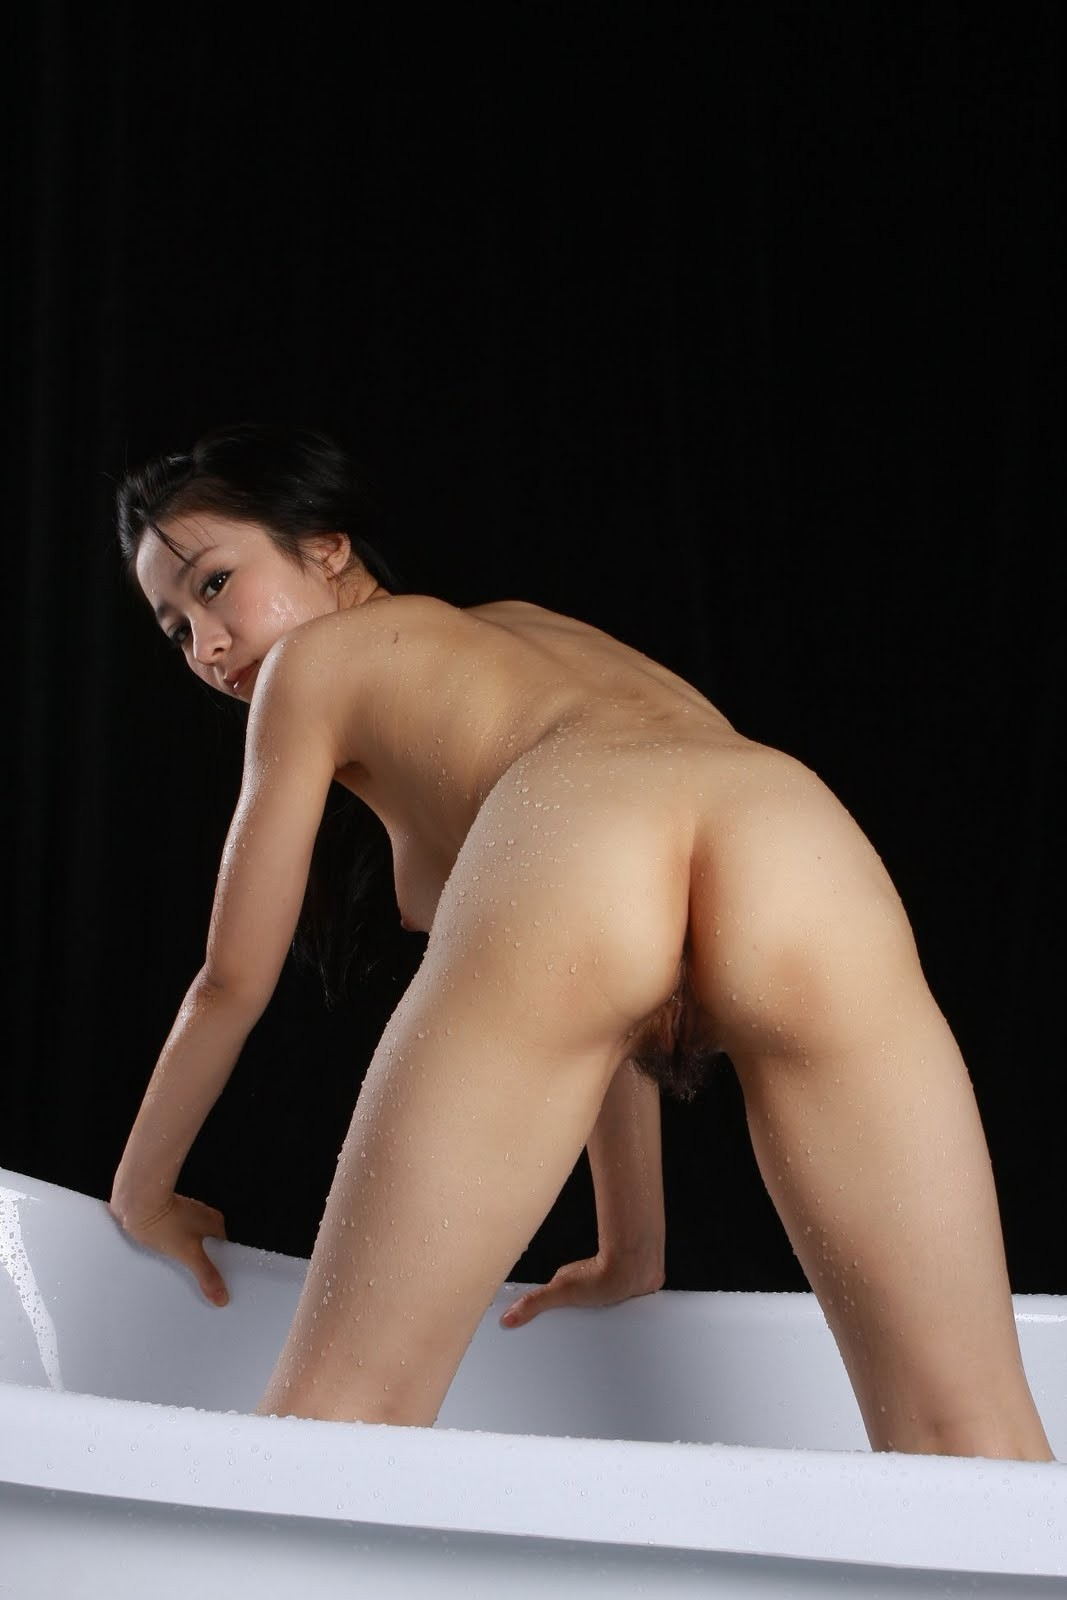 Akt porn Category:Nude standing